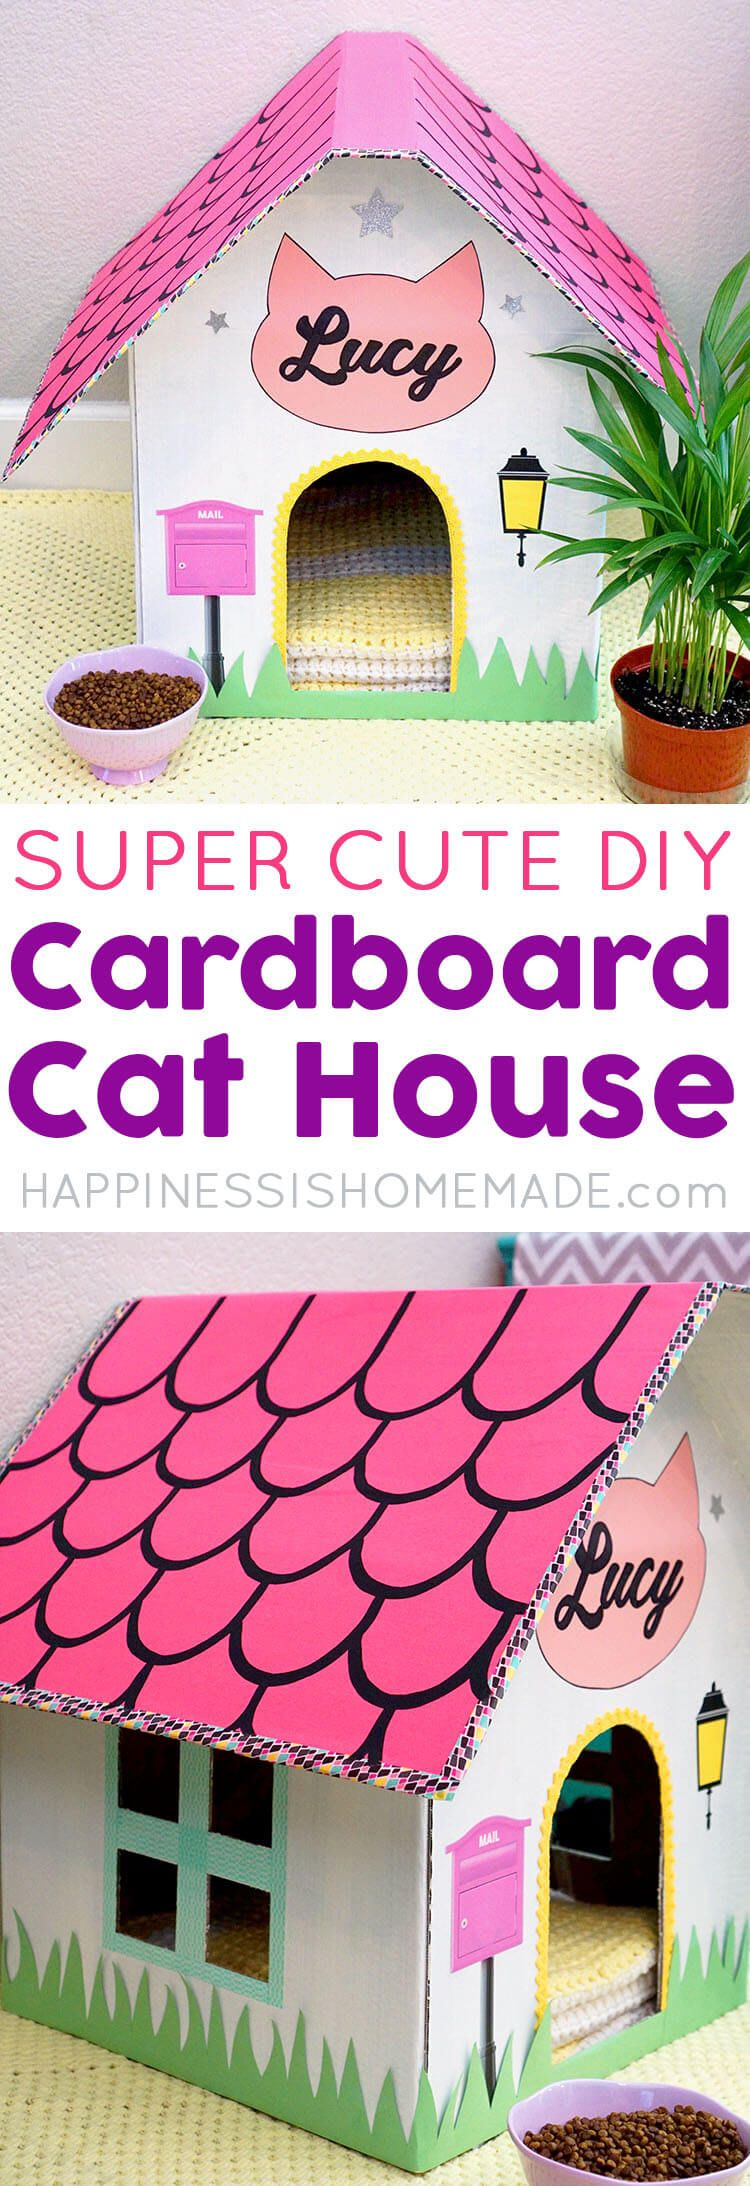 This DIY Is Purrfect For Cats That Love Cardboard And People That Love  Their Kitties! | Pets | Pinterest | Kitty, Cat And People